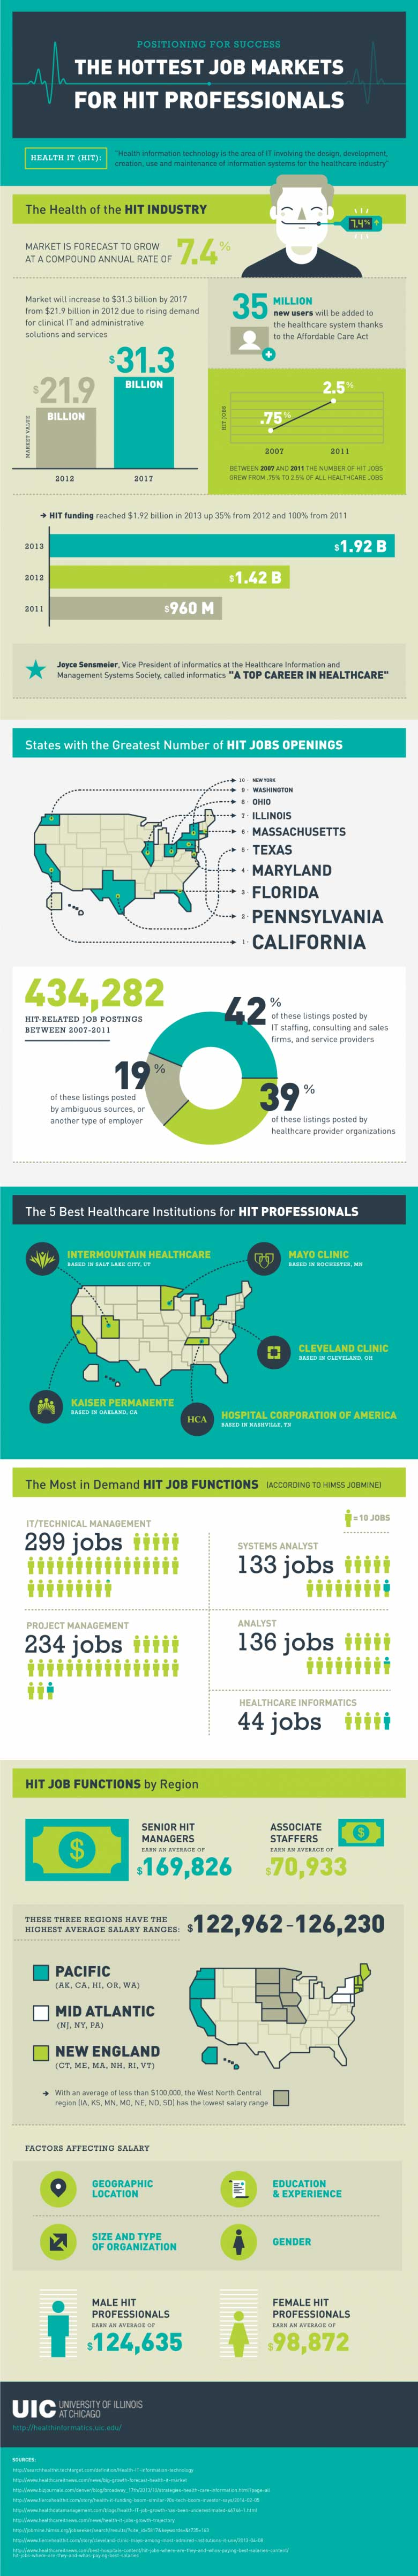 Infograph on the hottest job markets for HIT professionals